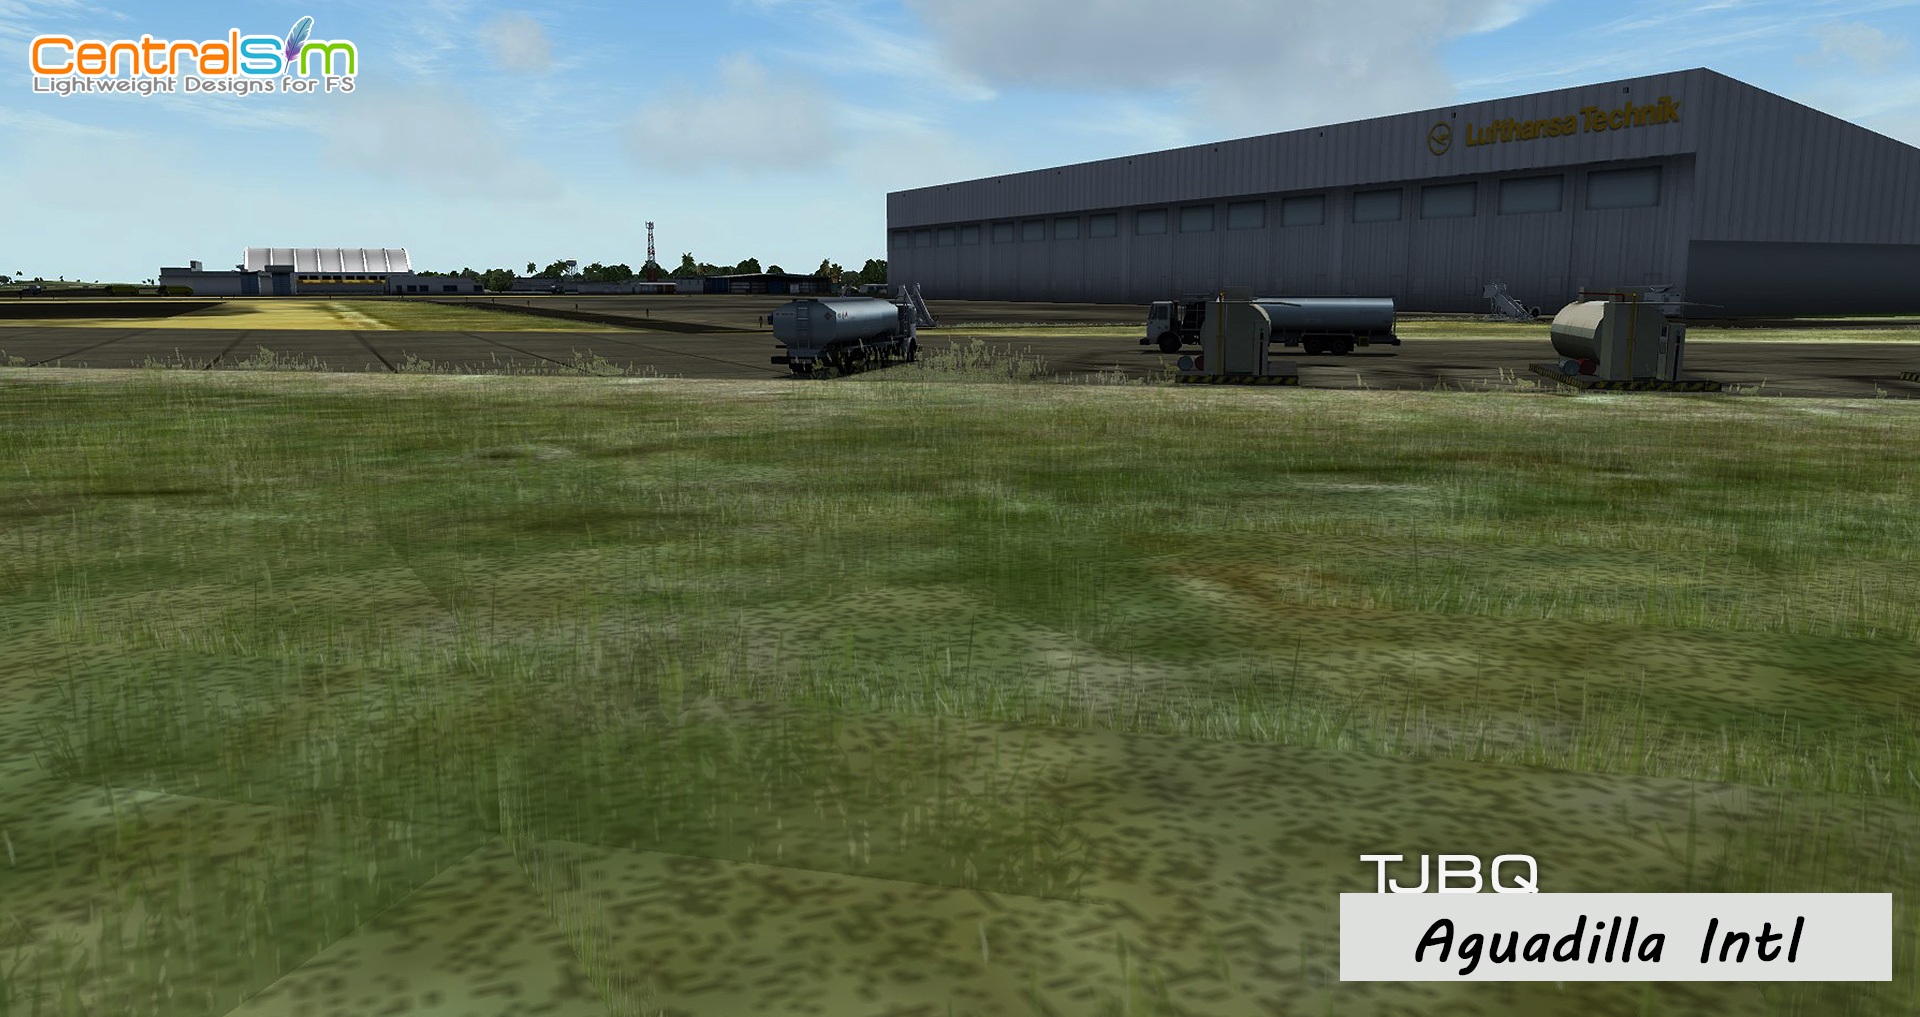 CENTRALSIM - TJBQ RAFAEL HERNANDEZ INTERNATIONAL AIRPORT - AGUADILLA P3D